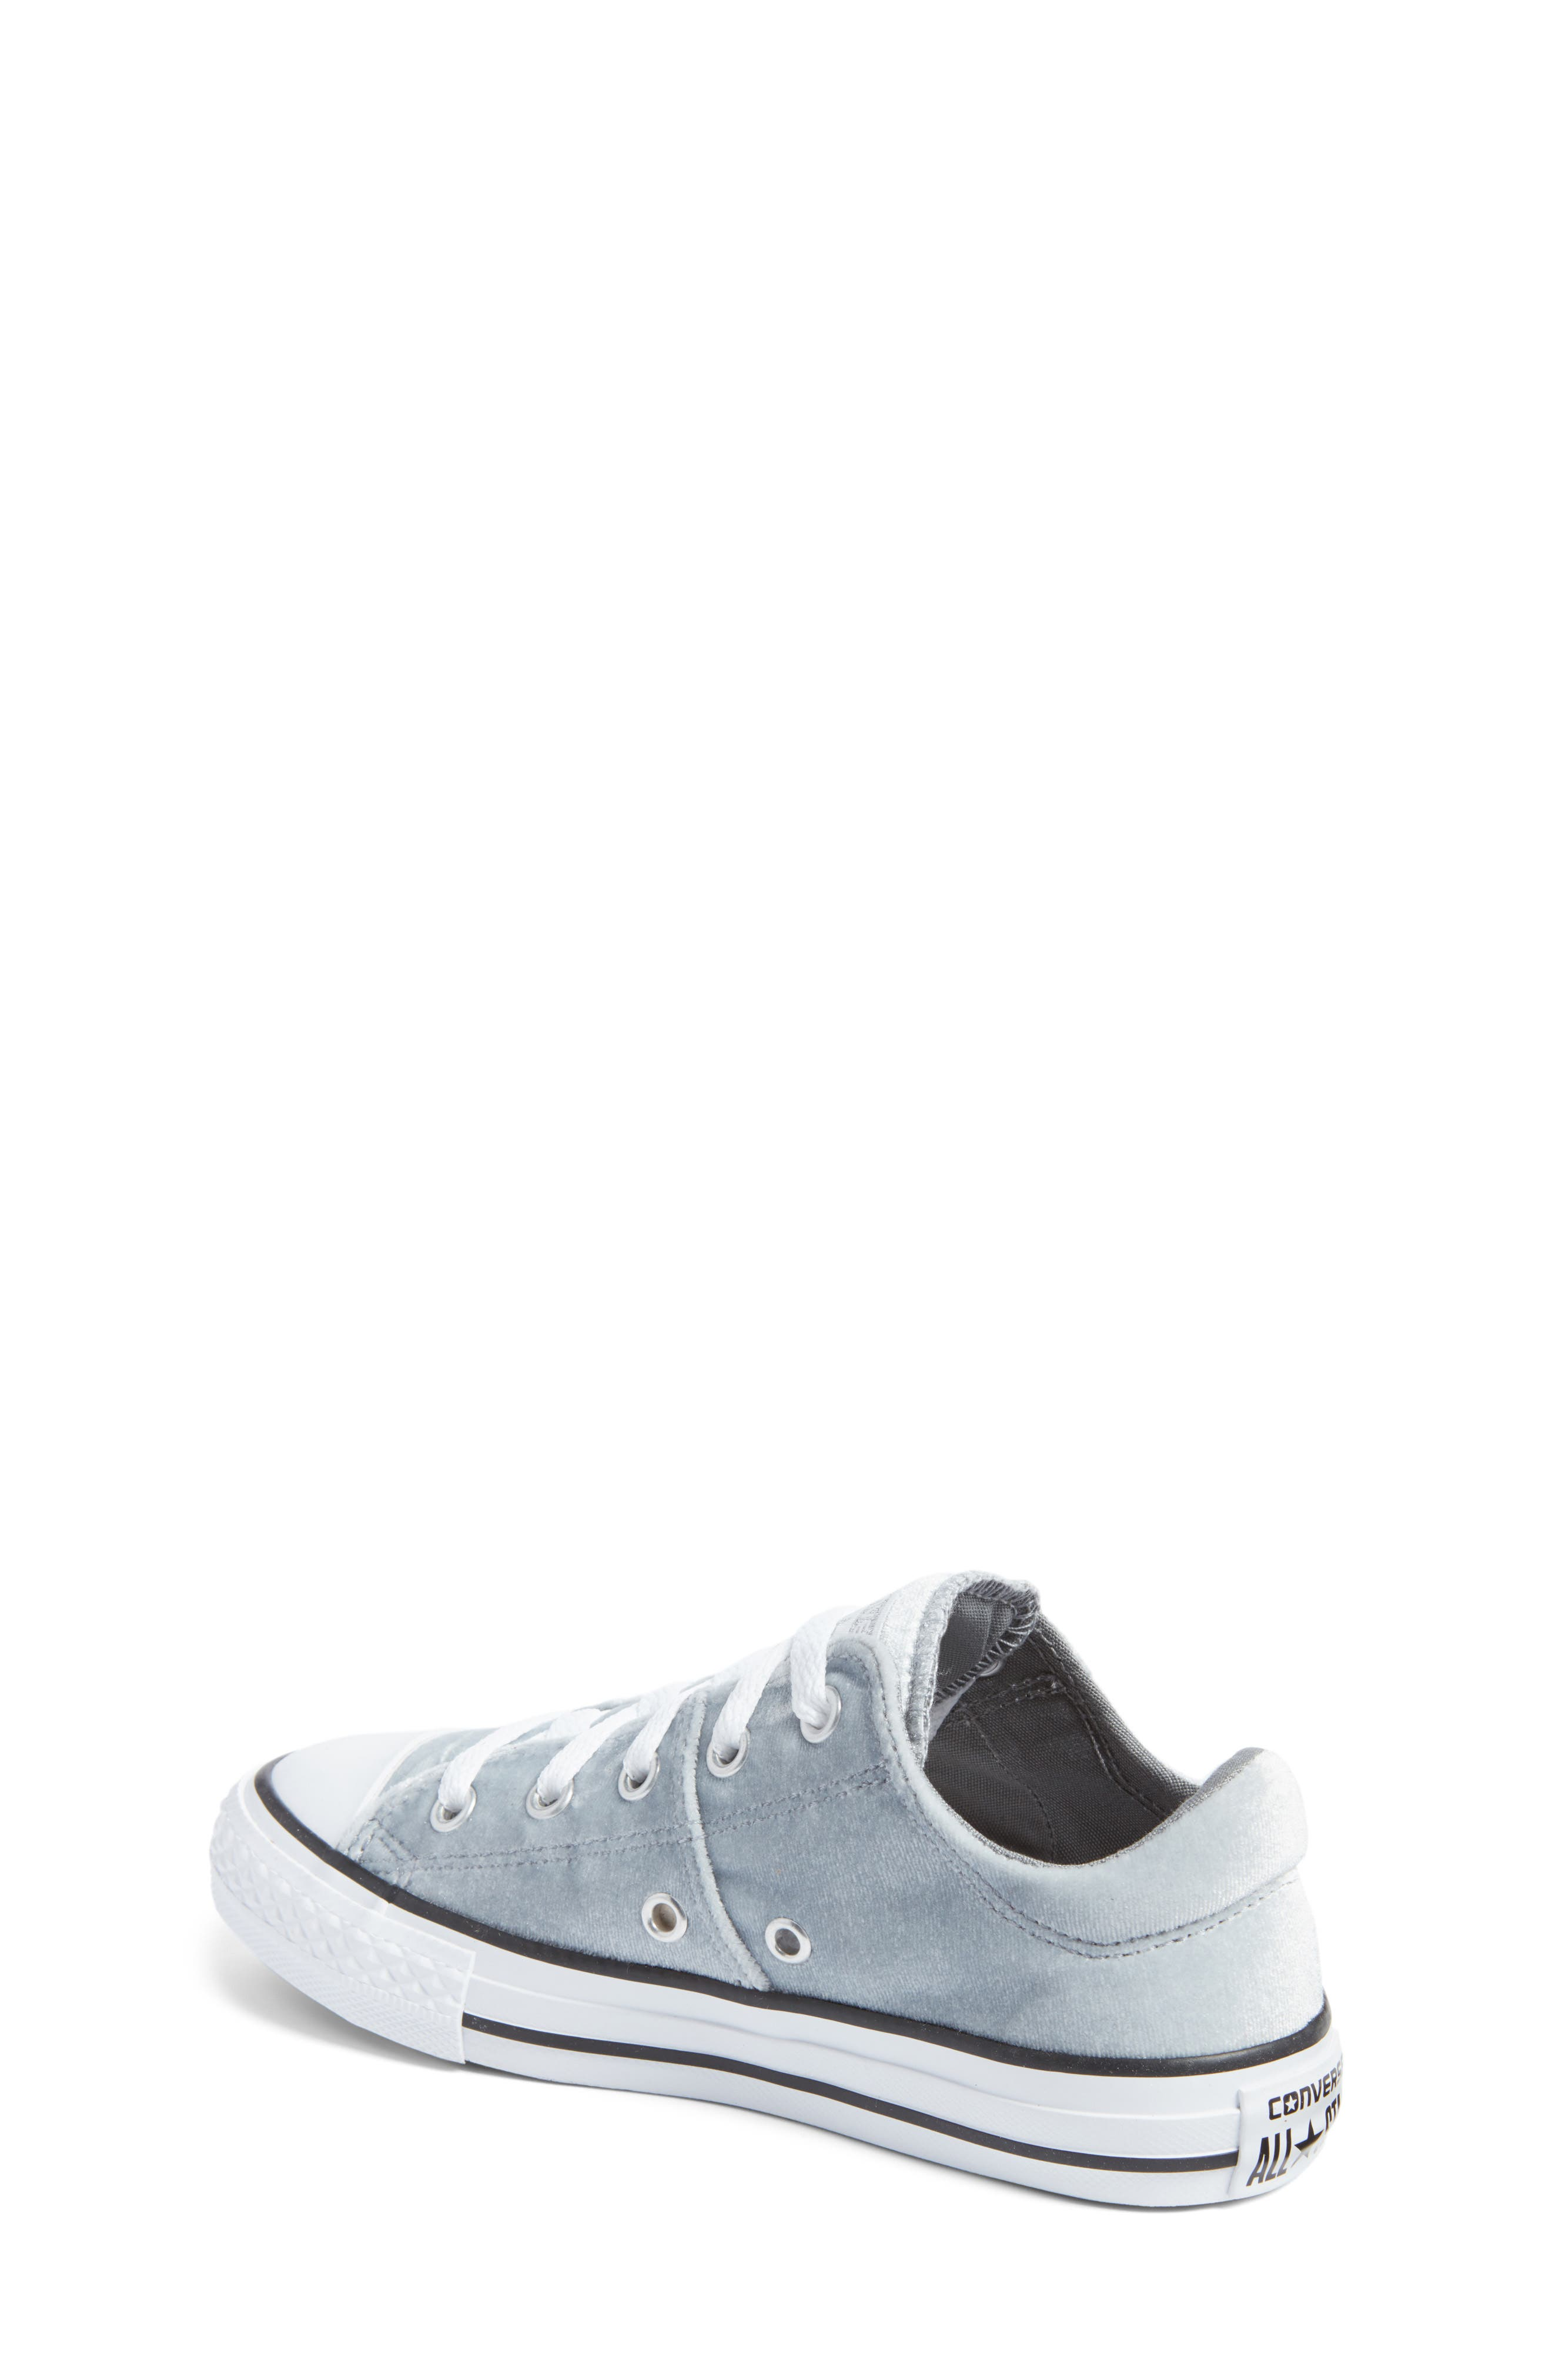 Chuck Taylor<sup>®</sup> All Star<sup>®</sup> Madison Velvet Low Top Sneaker,                             Alternate thumbnail 2, color,                             020